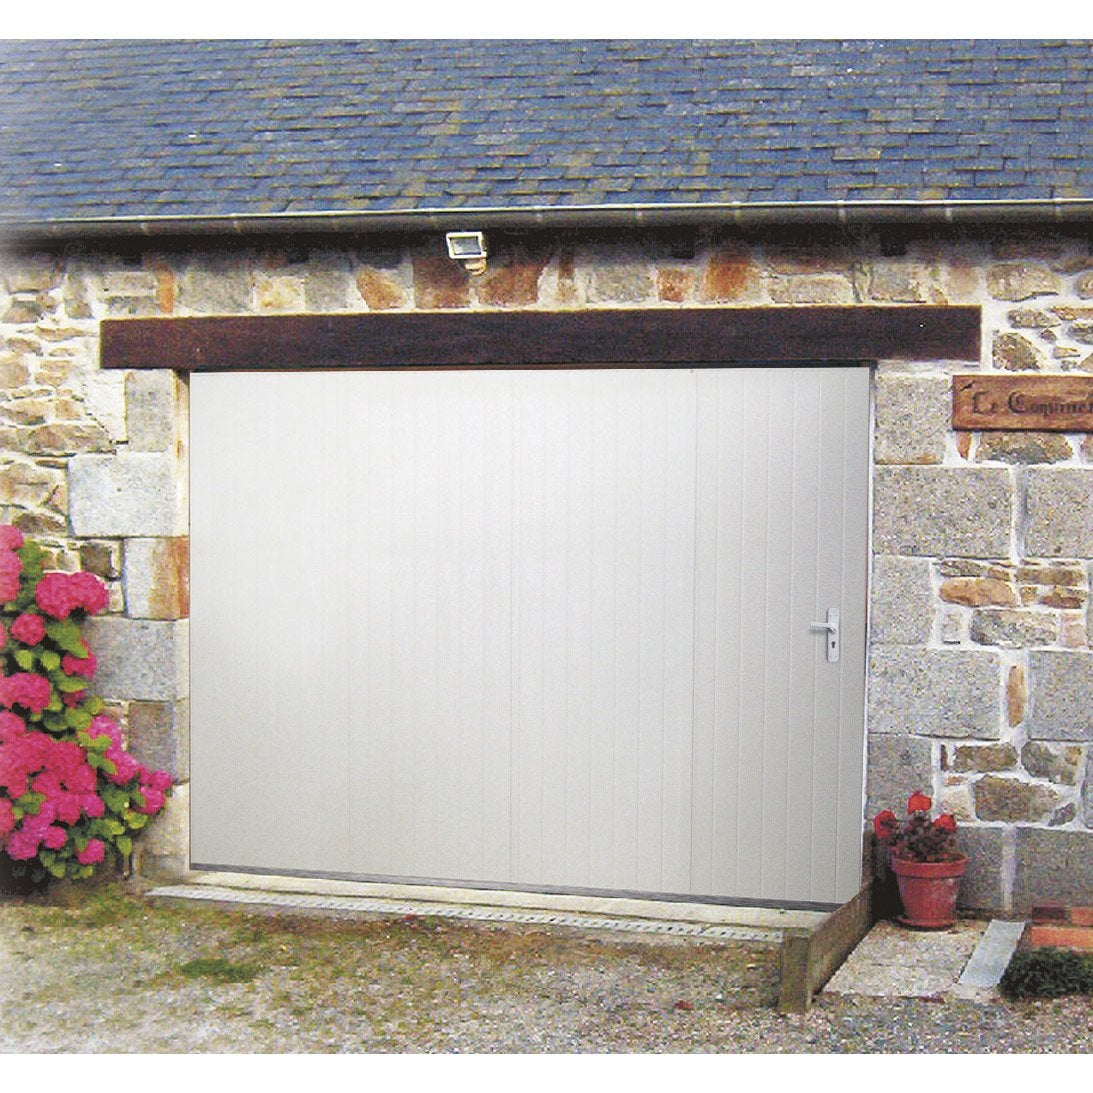 Porte de garage coulissante manuelle artens x for Porte automatique garage prix